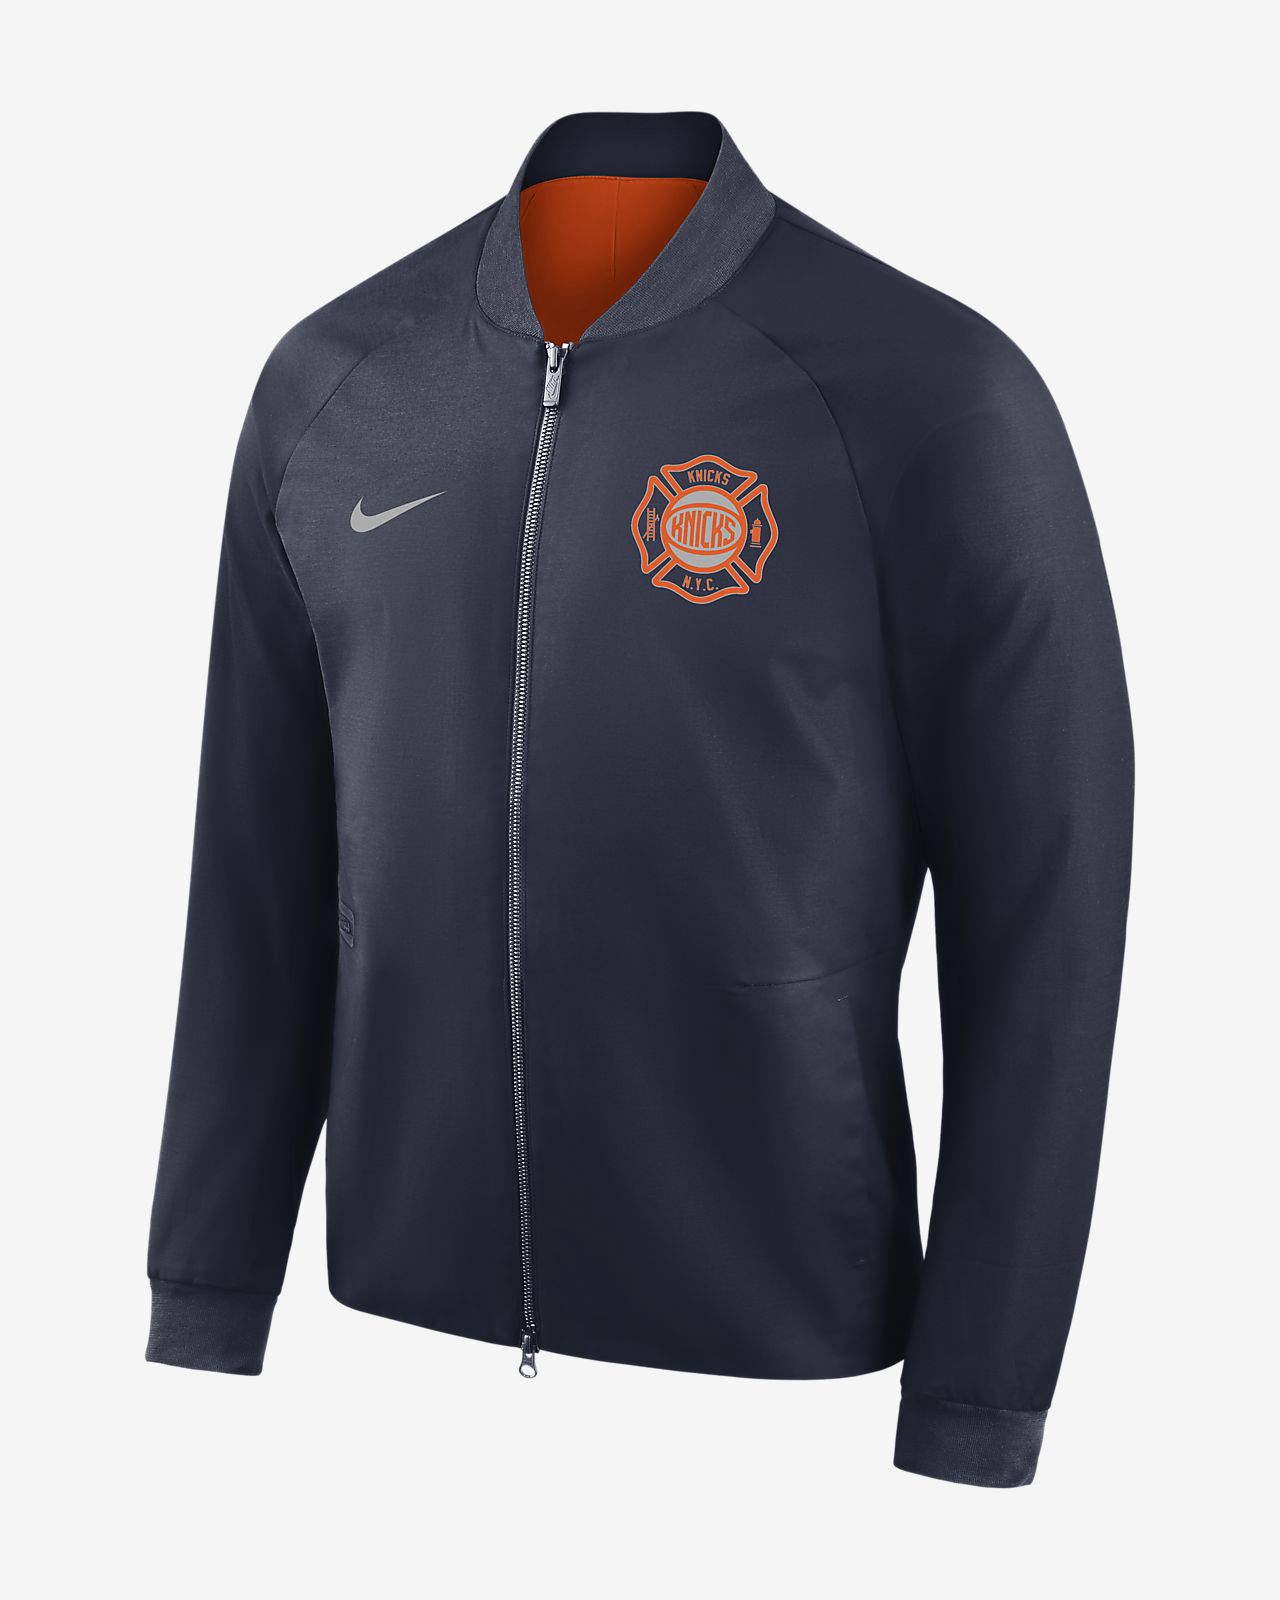 New York Knicks City Edition Nike Modern Men s NBA Varsity Jacket ... e133e6317